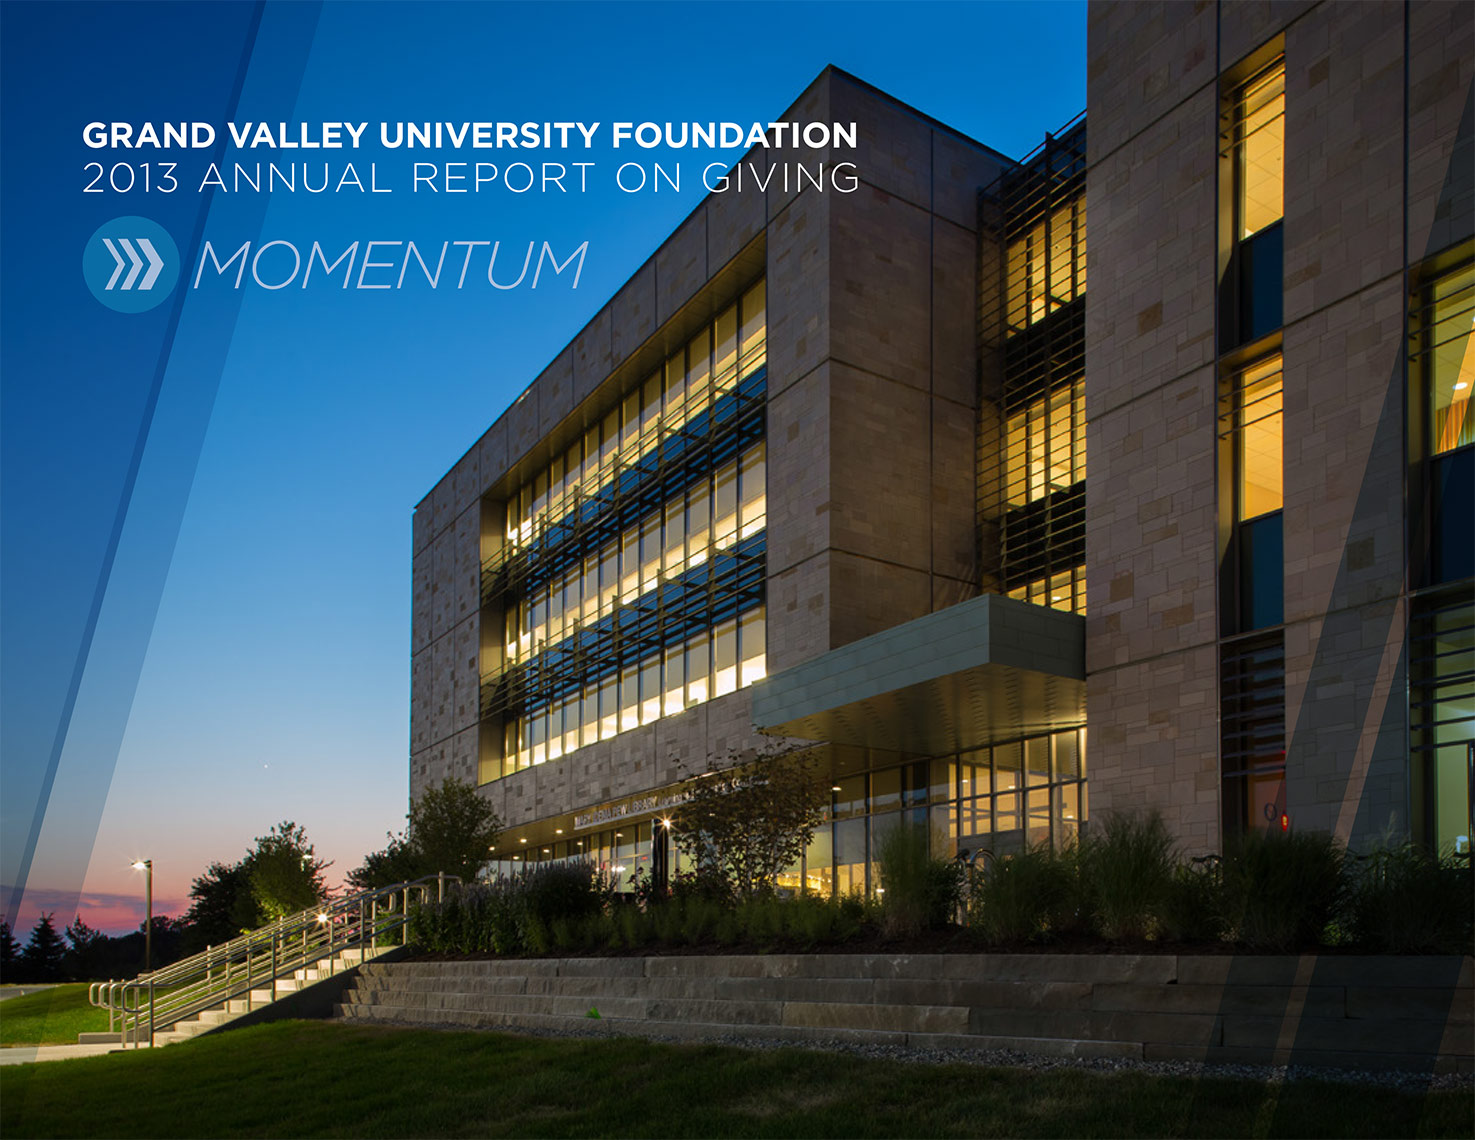 GVSU-Foundation-AR-cover2013.jpg